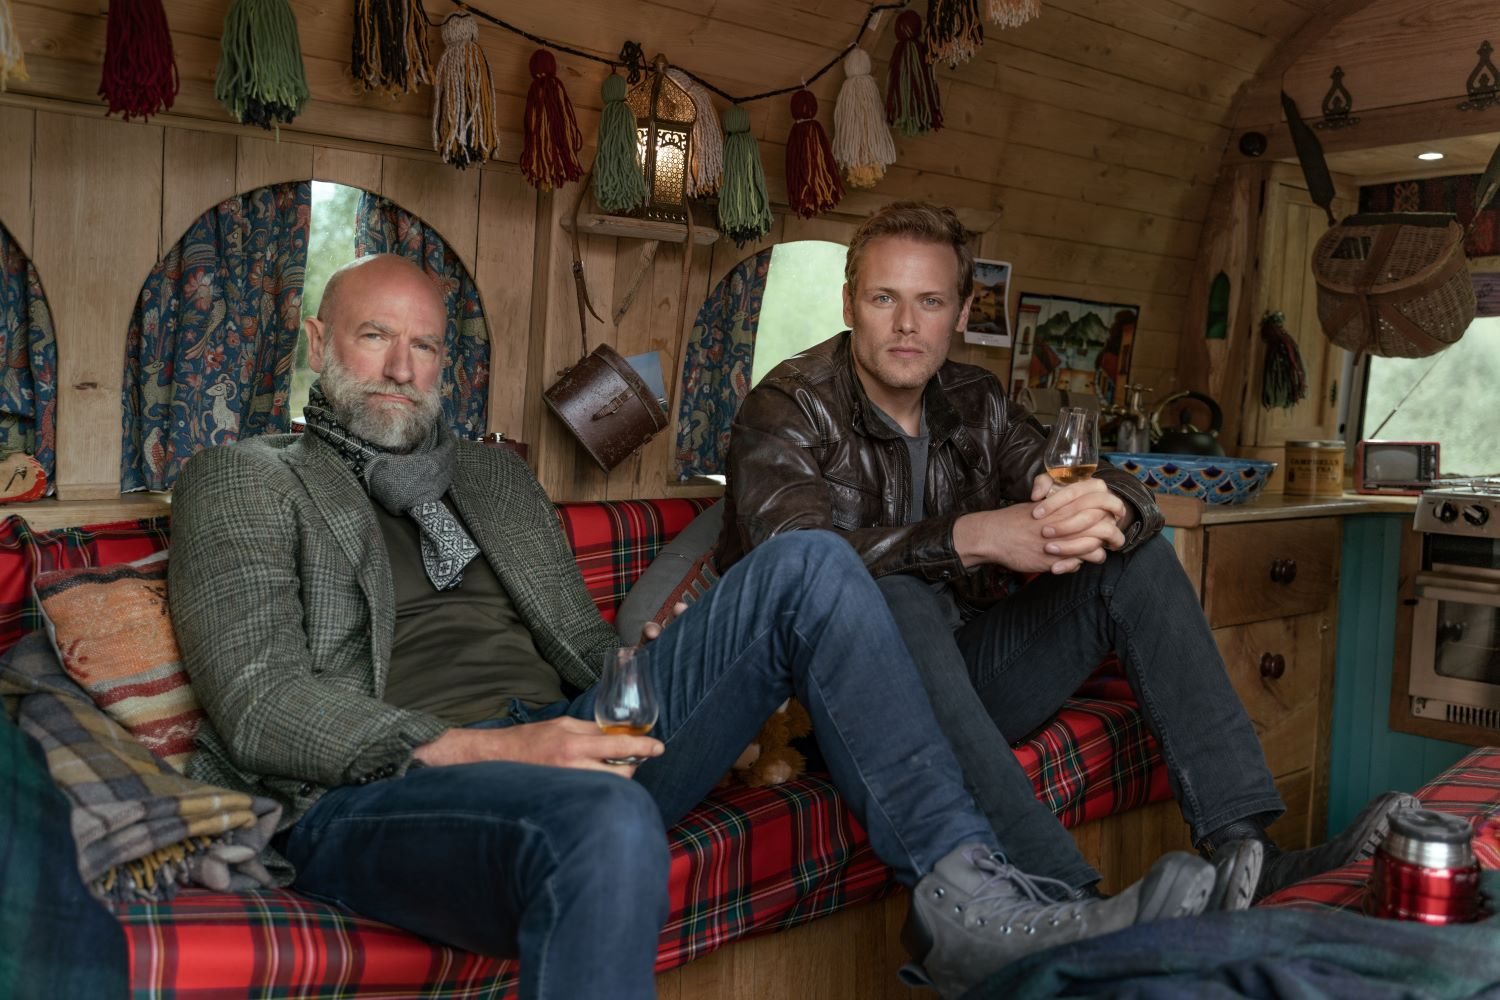 'Outlander' stars Graham McTavish and Sam Heughan in 'Men In Kilts'